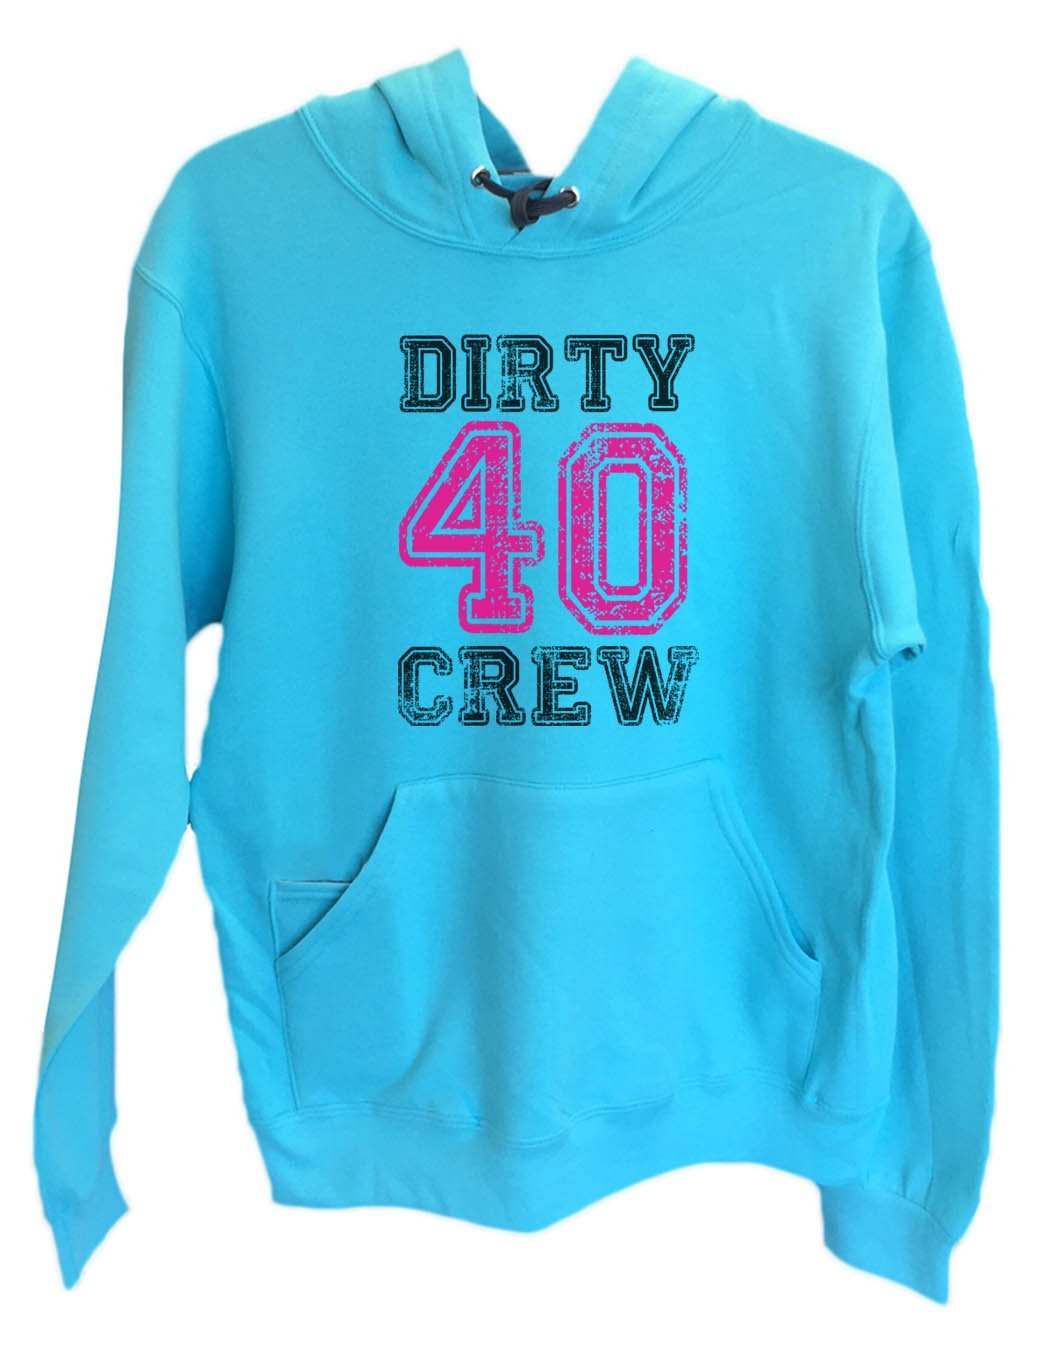 UNISEX HOODIE - Dirty Forty Crew - FUNNY MENS AND WOMENS HOODED SWEATSHIRTS - 2146 Funny Shirt Small / Turquoise